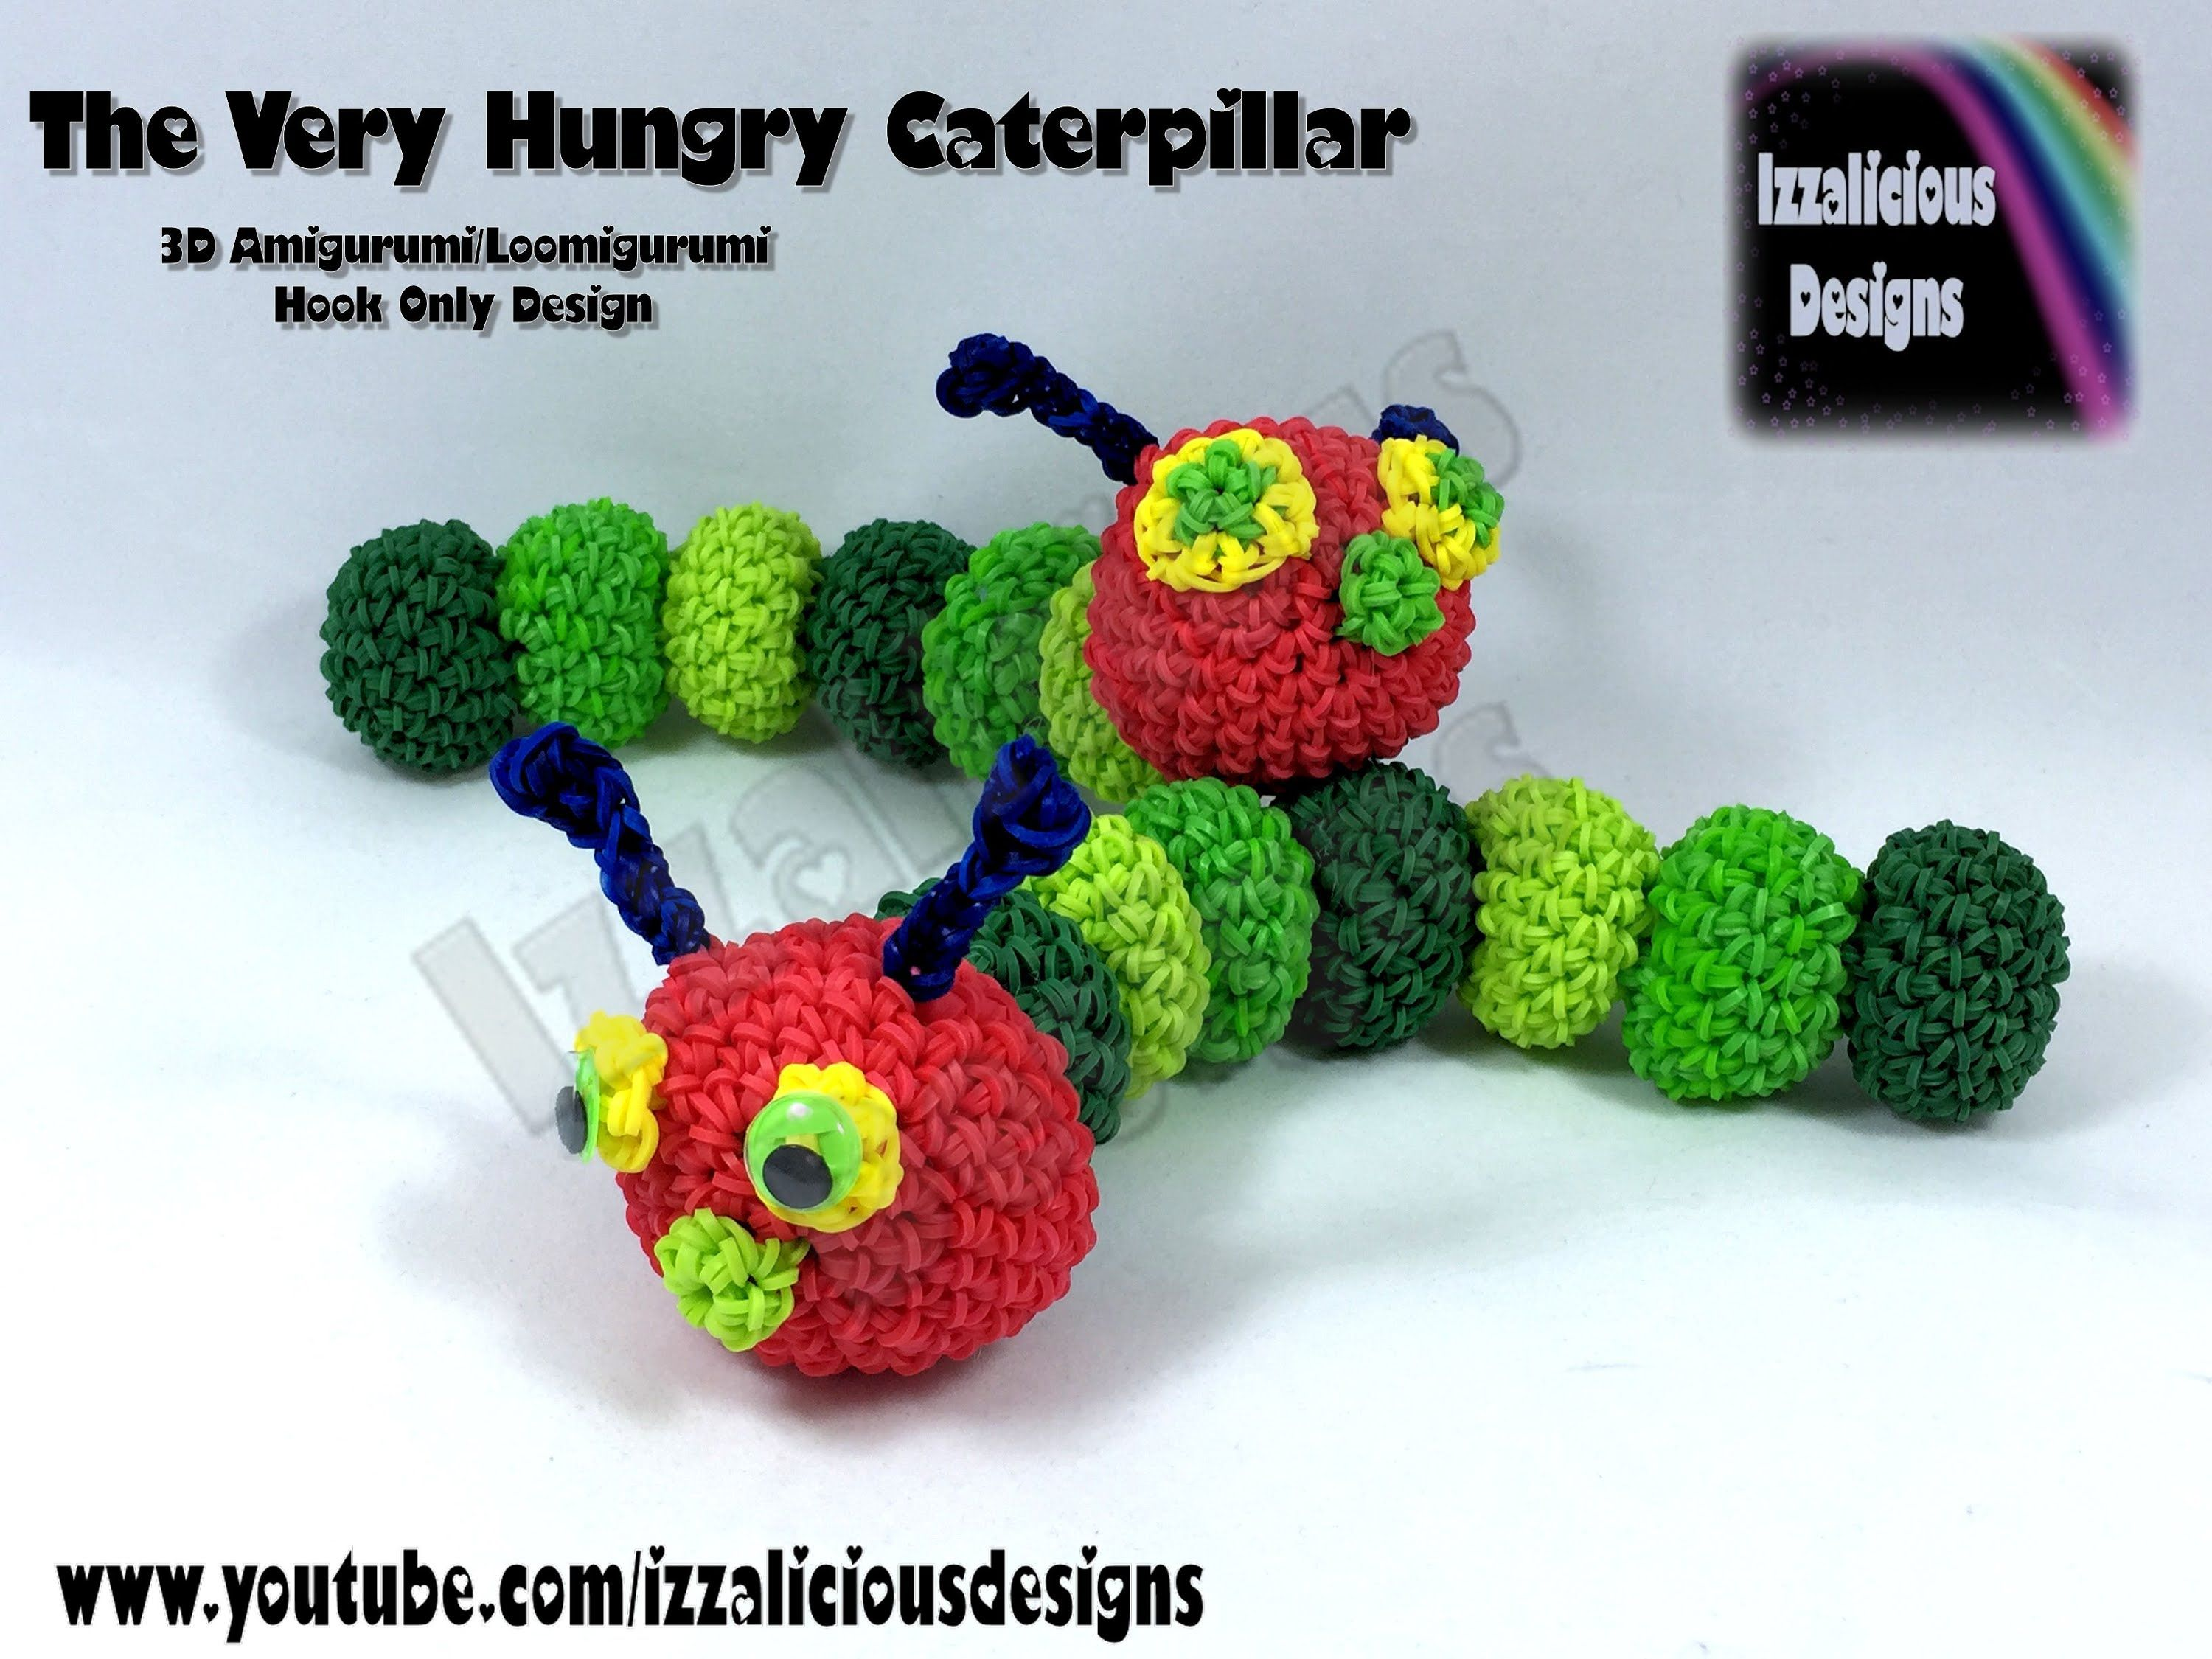 Amigurumi Loom Patterns : Rainbow loom 3d amigurumi loomigurumi very hungry caterpillar